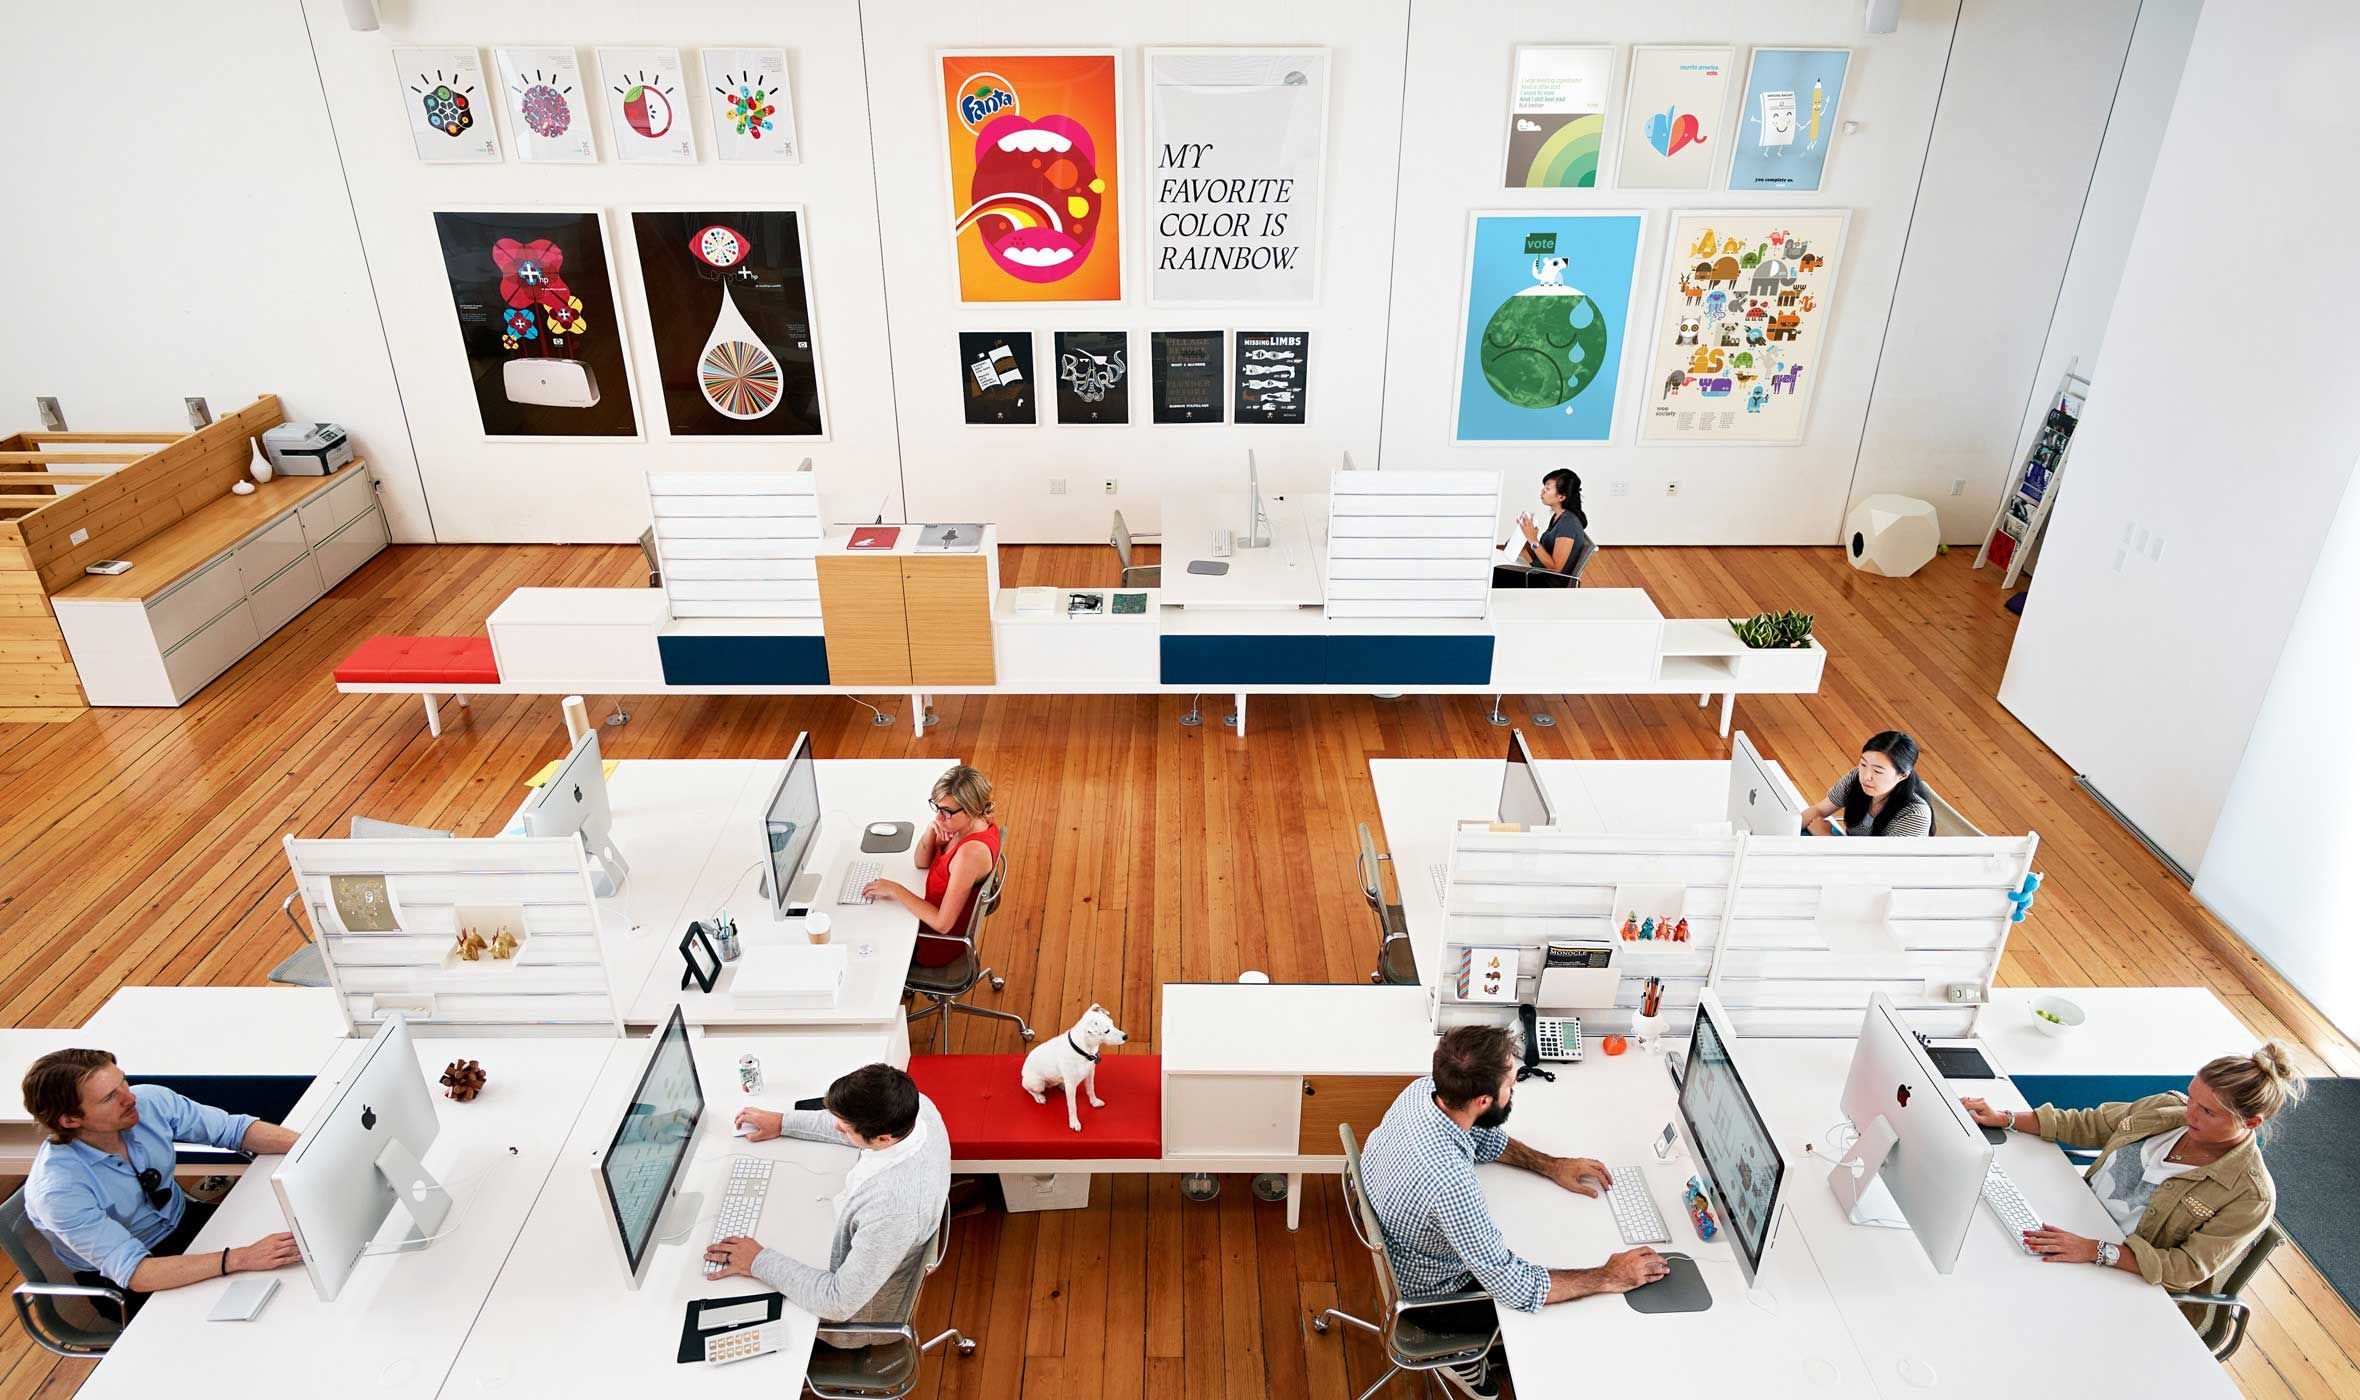 Office Design Studio Industrial Office Is San Franciscobased Brand Strategy And Design Firm Founded By Jason Schulte Specializing In Identities Packaging Digital Experiences Pinterest Office Is San Franciscobased Brand Strategy And Design Firm